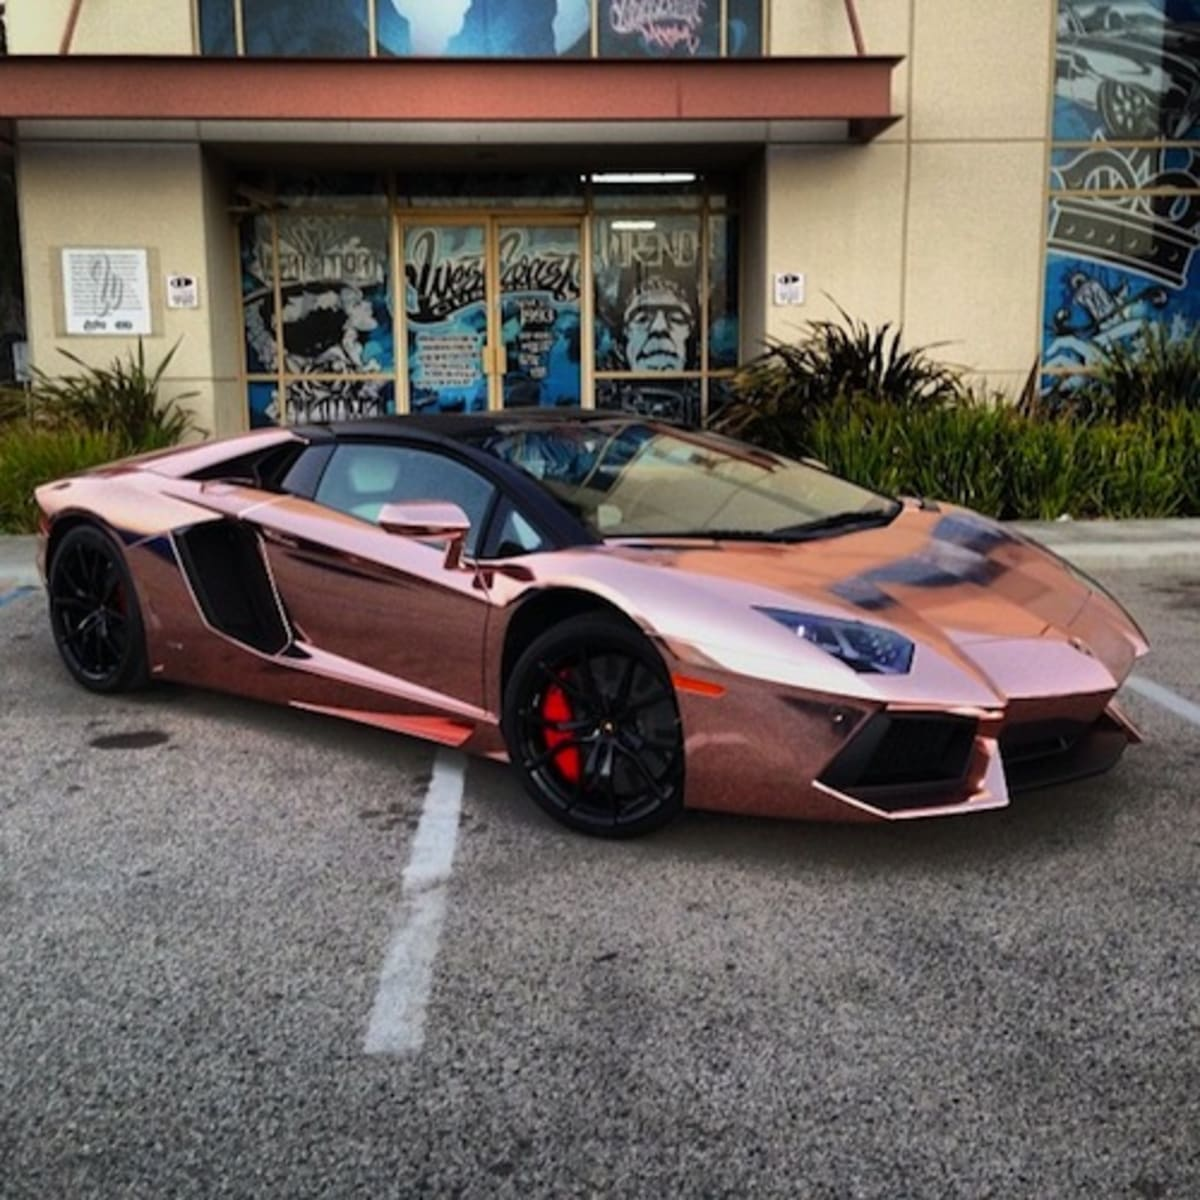 2013 Lamborghini Gallardo Interior: Tyga Goes All In, Turns His Lamborghini Aventador Roadster